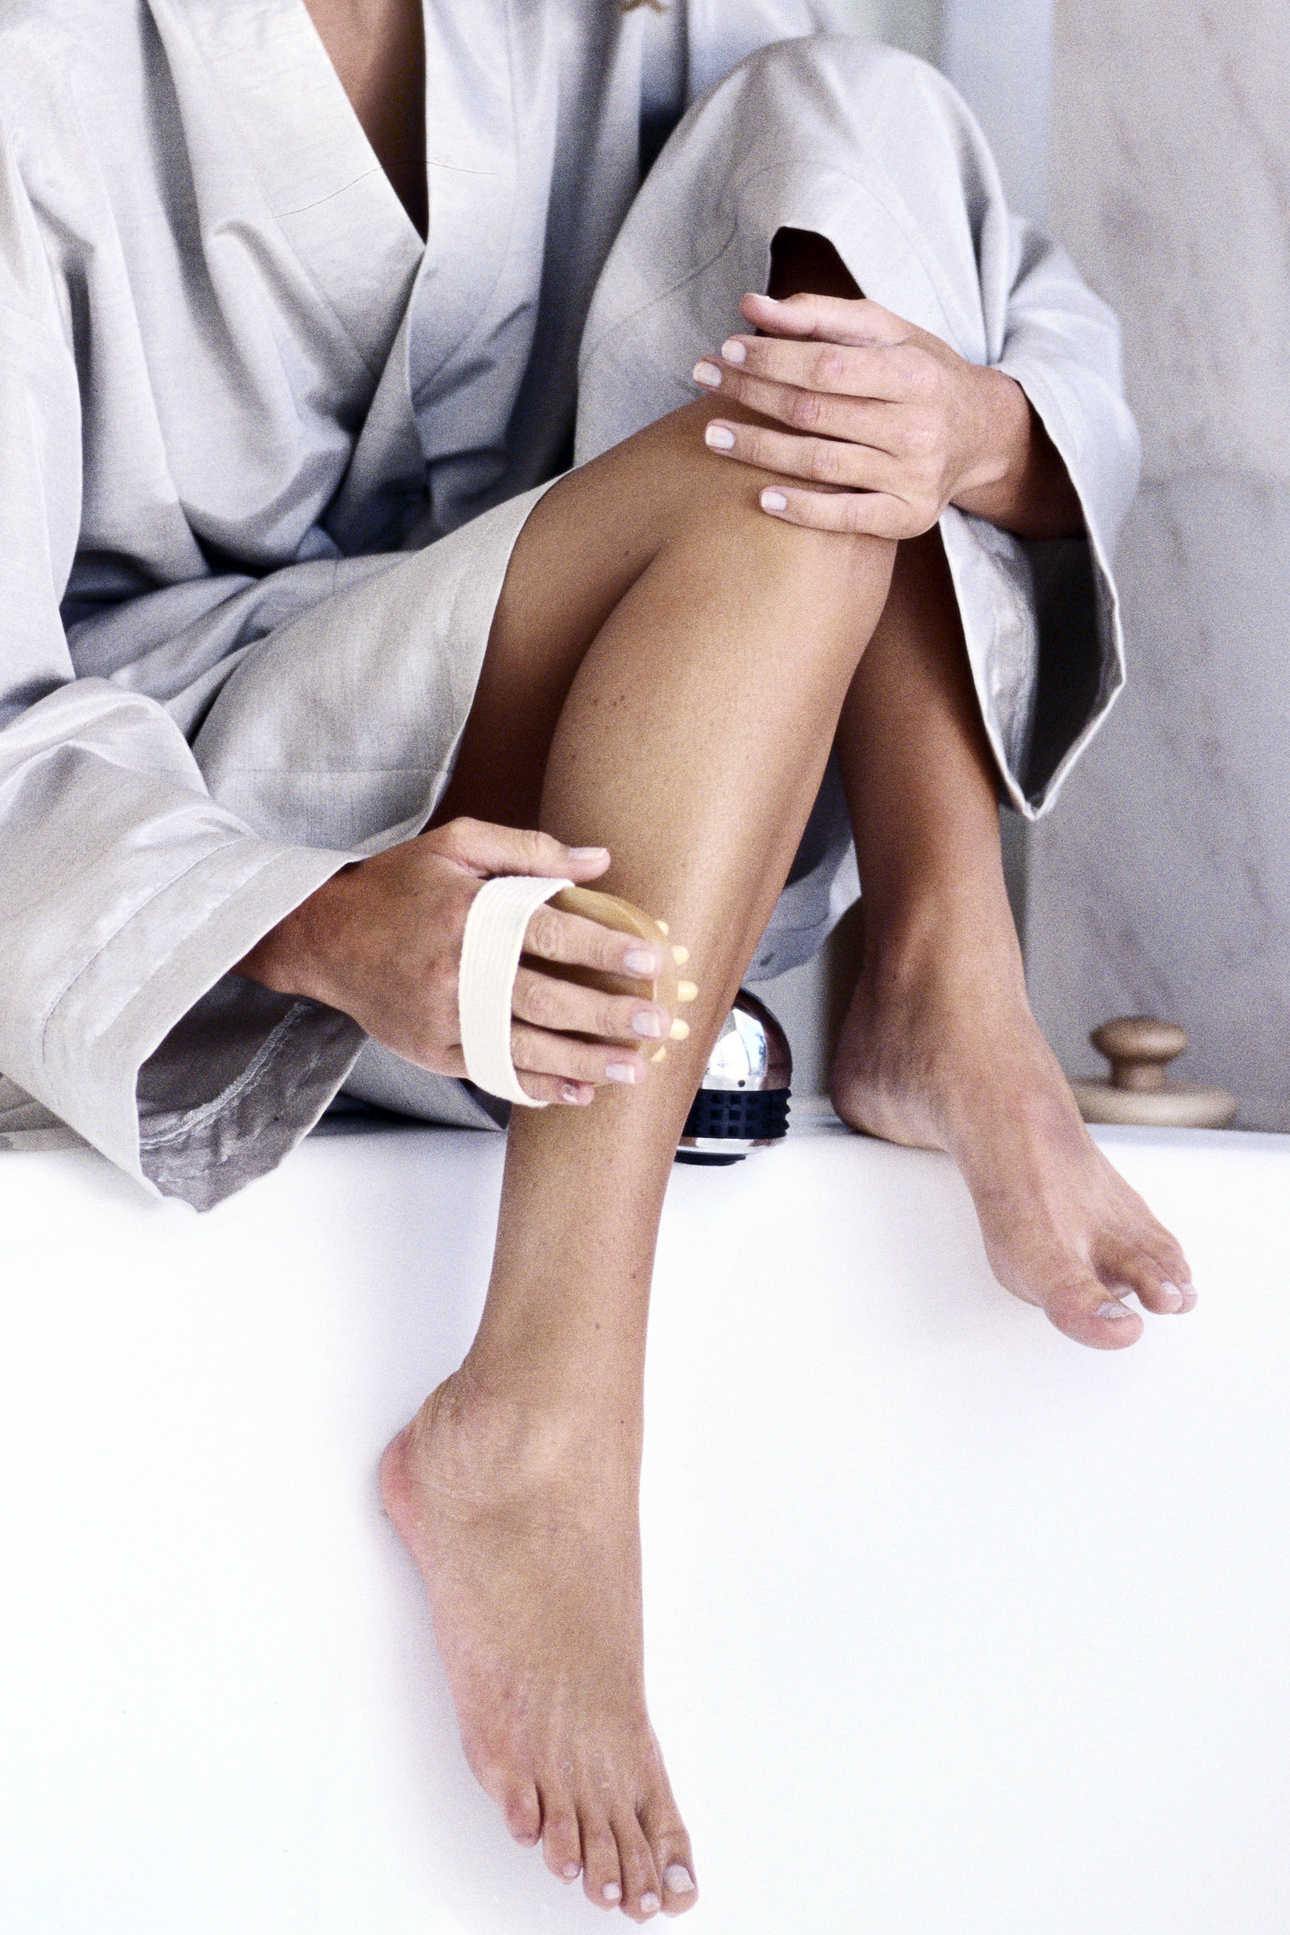 How to Shave Your Legs Less - Tips for Shaving Your Legs